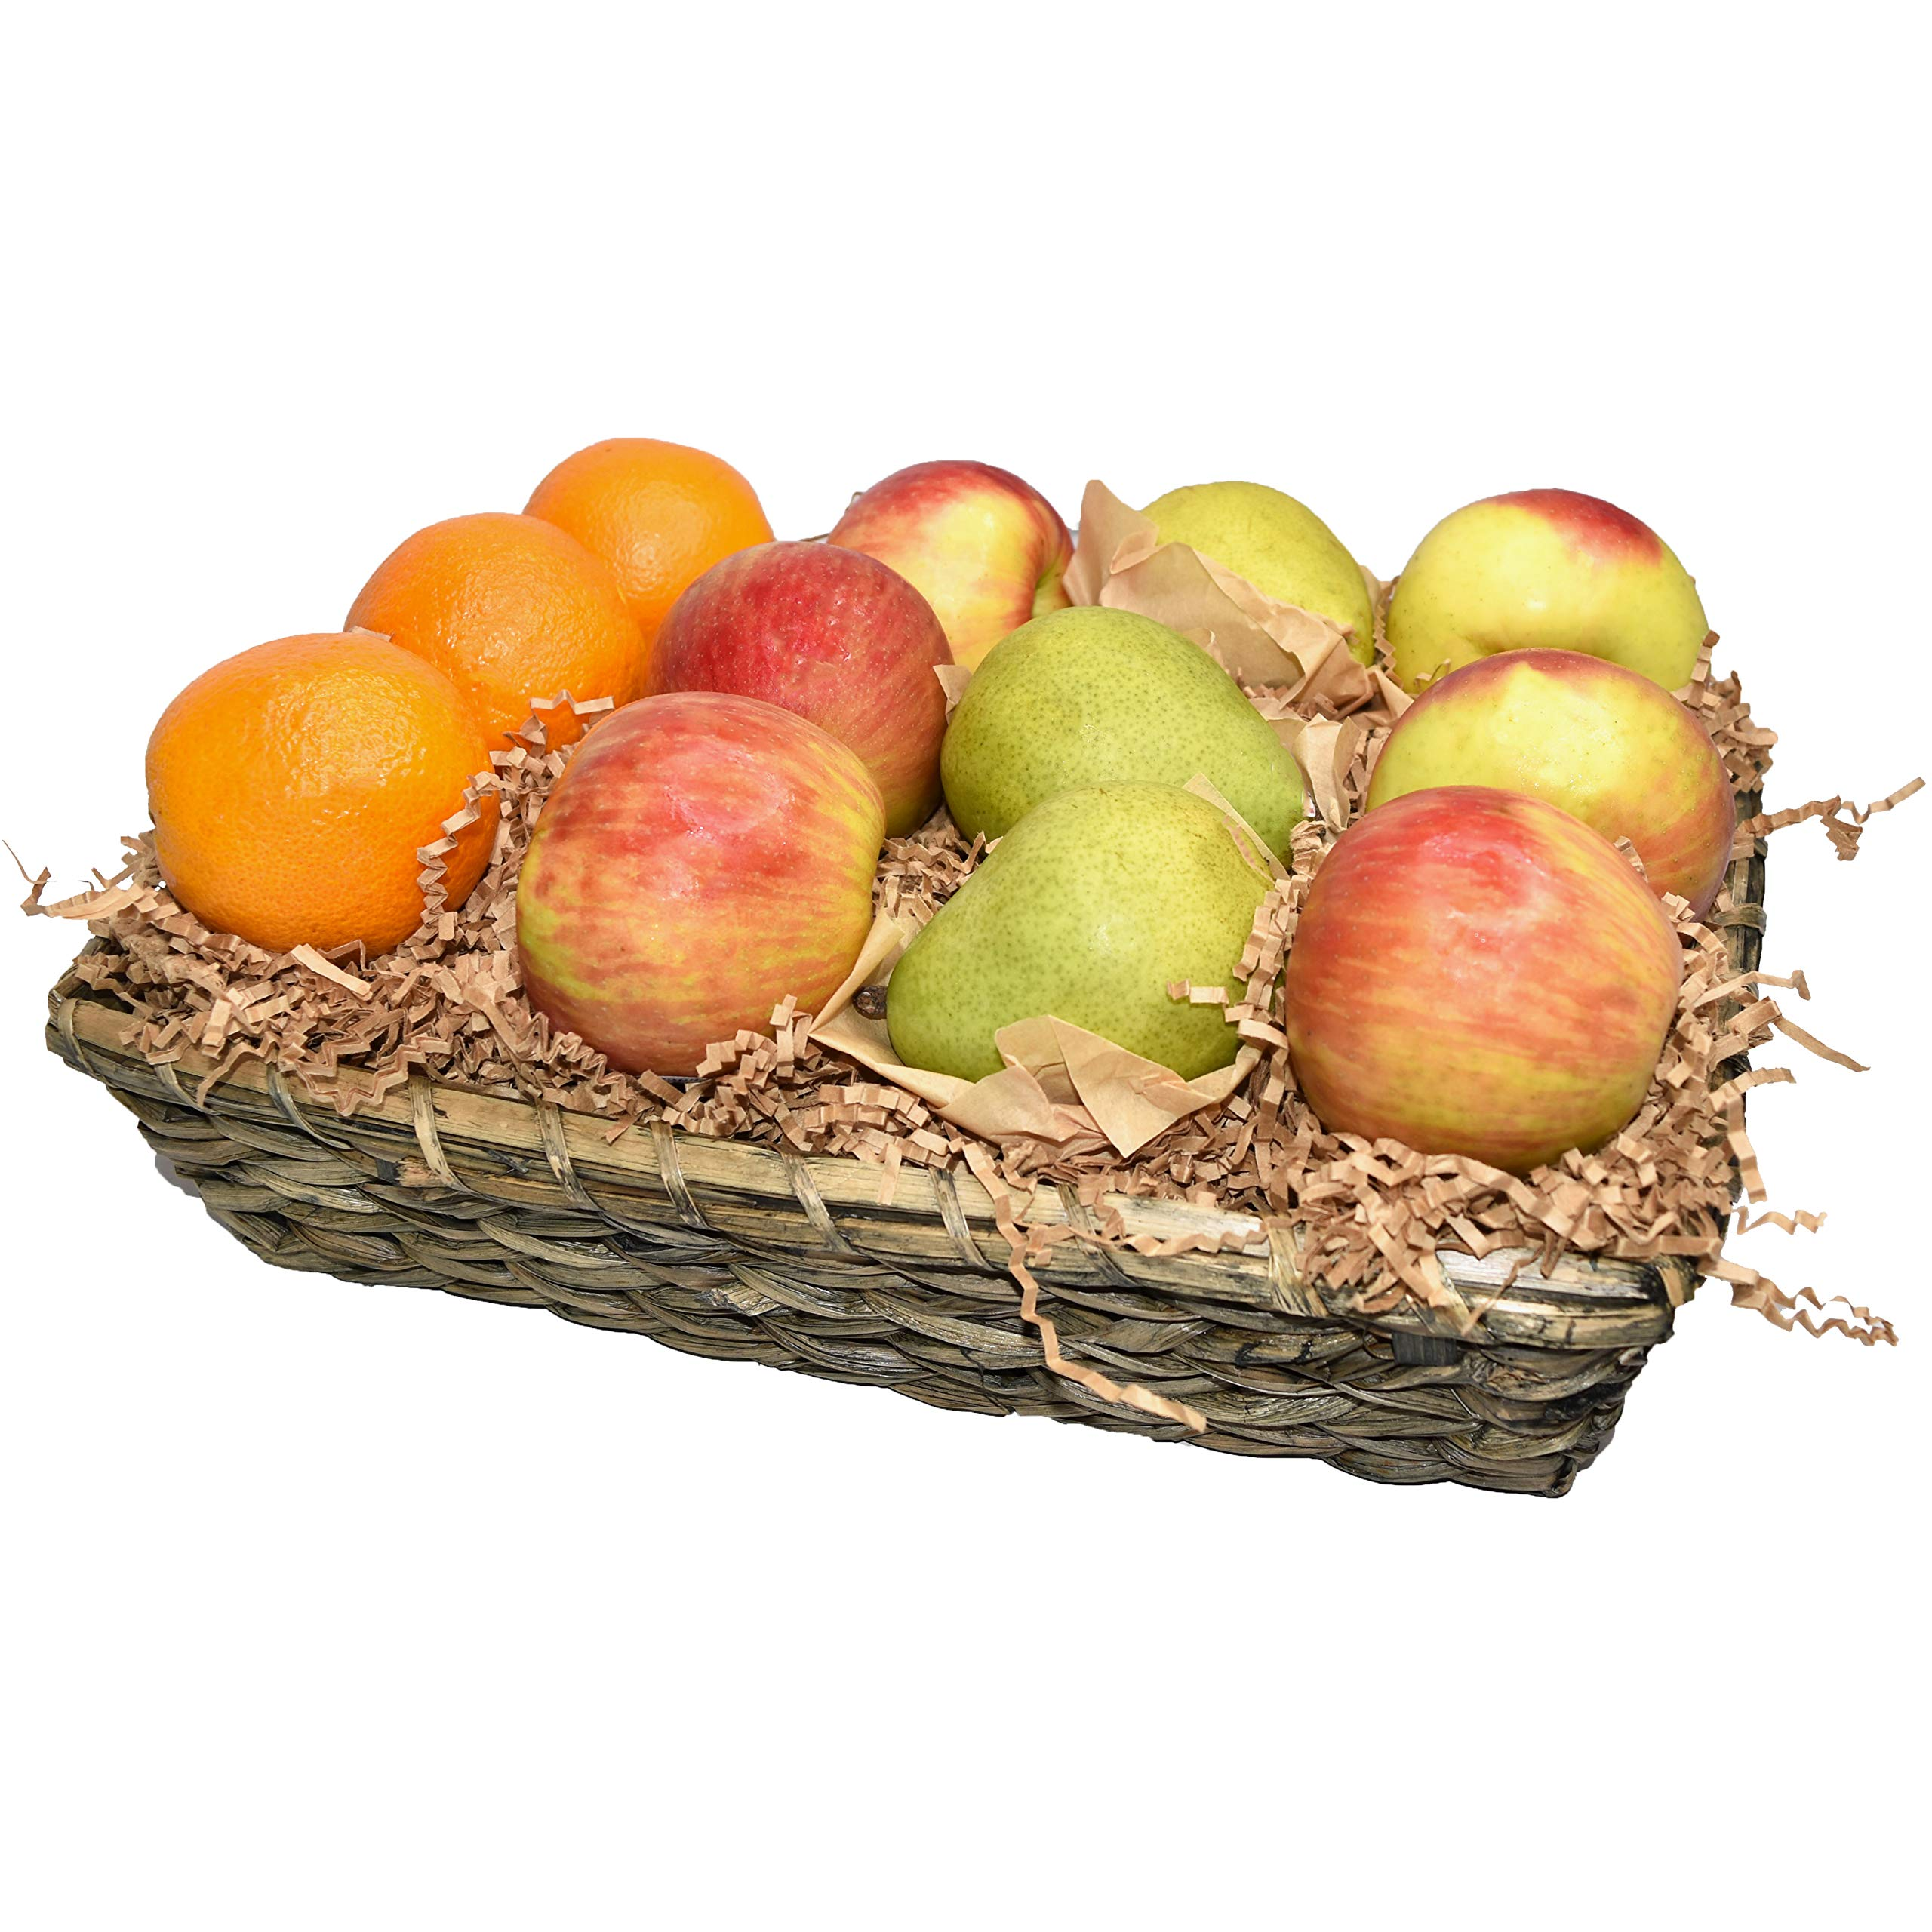 Capital City Fruit 12 Piece Signature Basket - Orchard Fresh Apples, Oranges, Pears - Perfect for Corp Gifts, Thank You, Congratulations, Birthdays, Get Well or Any Occasion